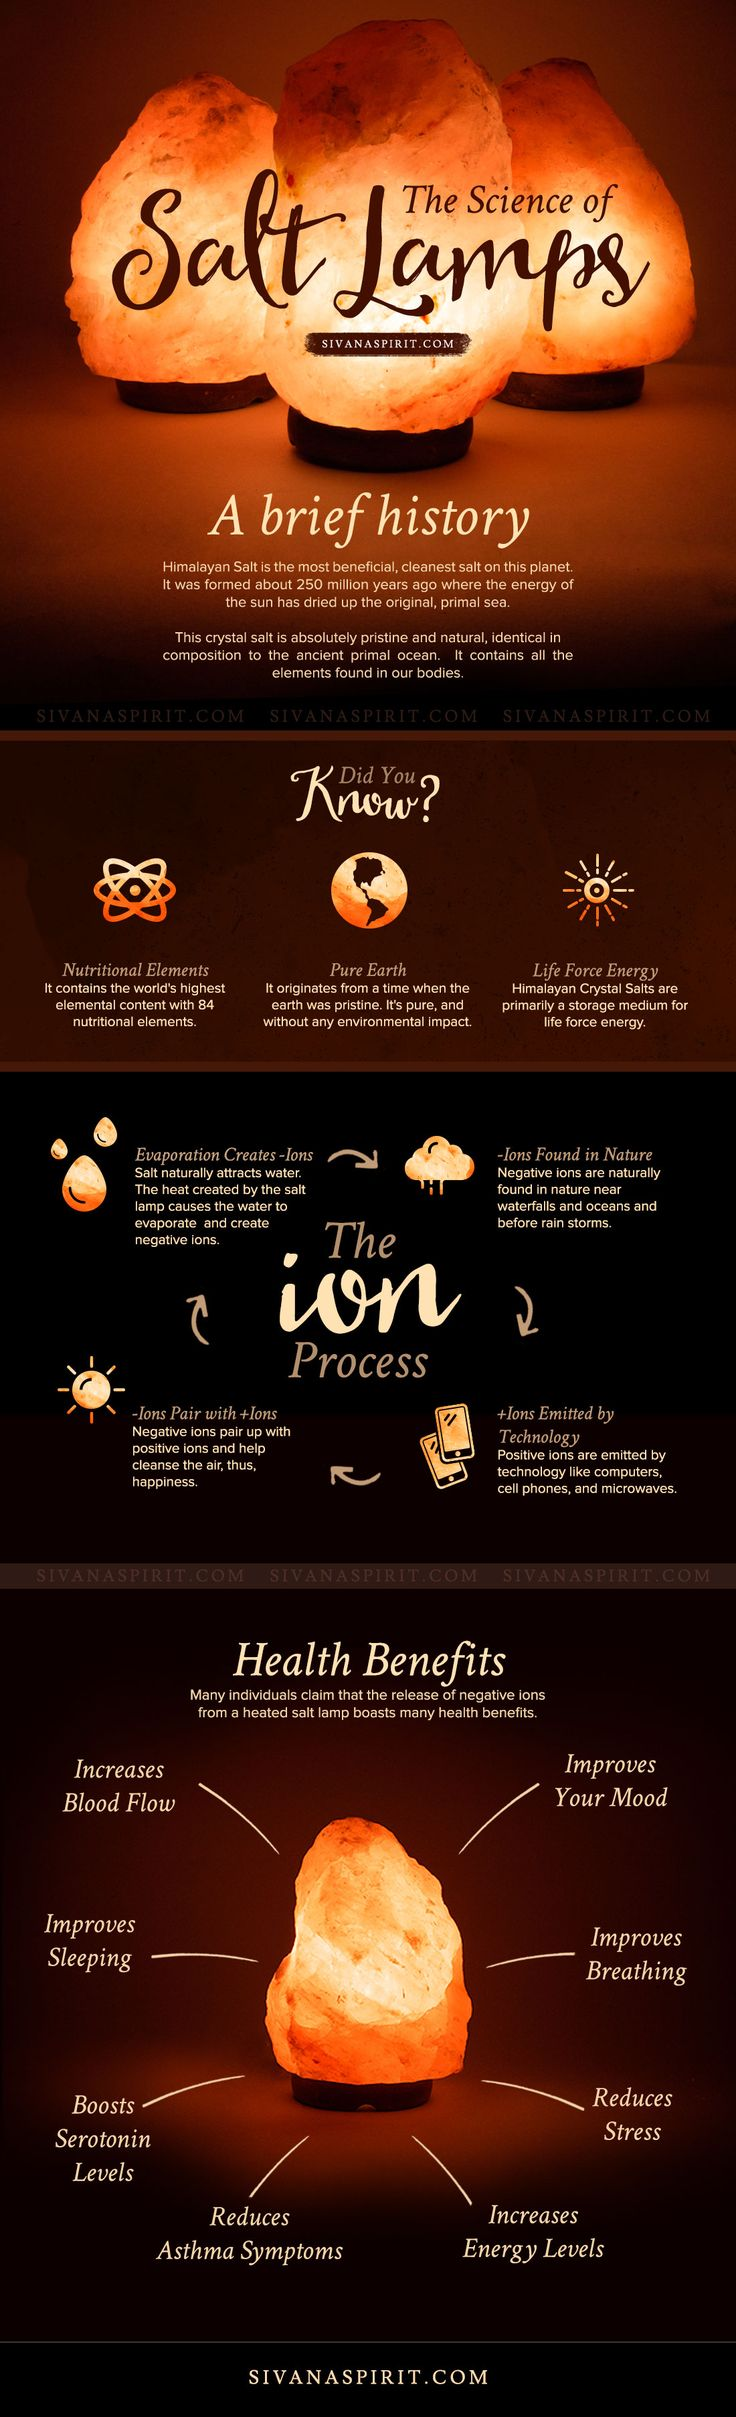 The Science of Himalayan Salt Lamps | SivanaSpirit.com